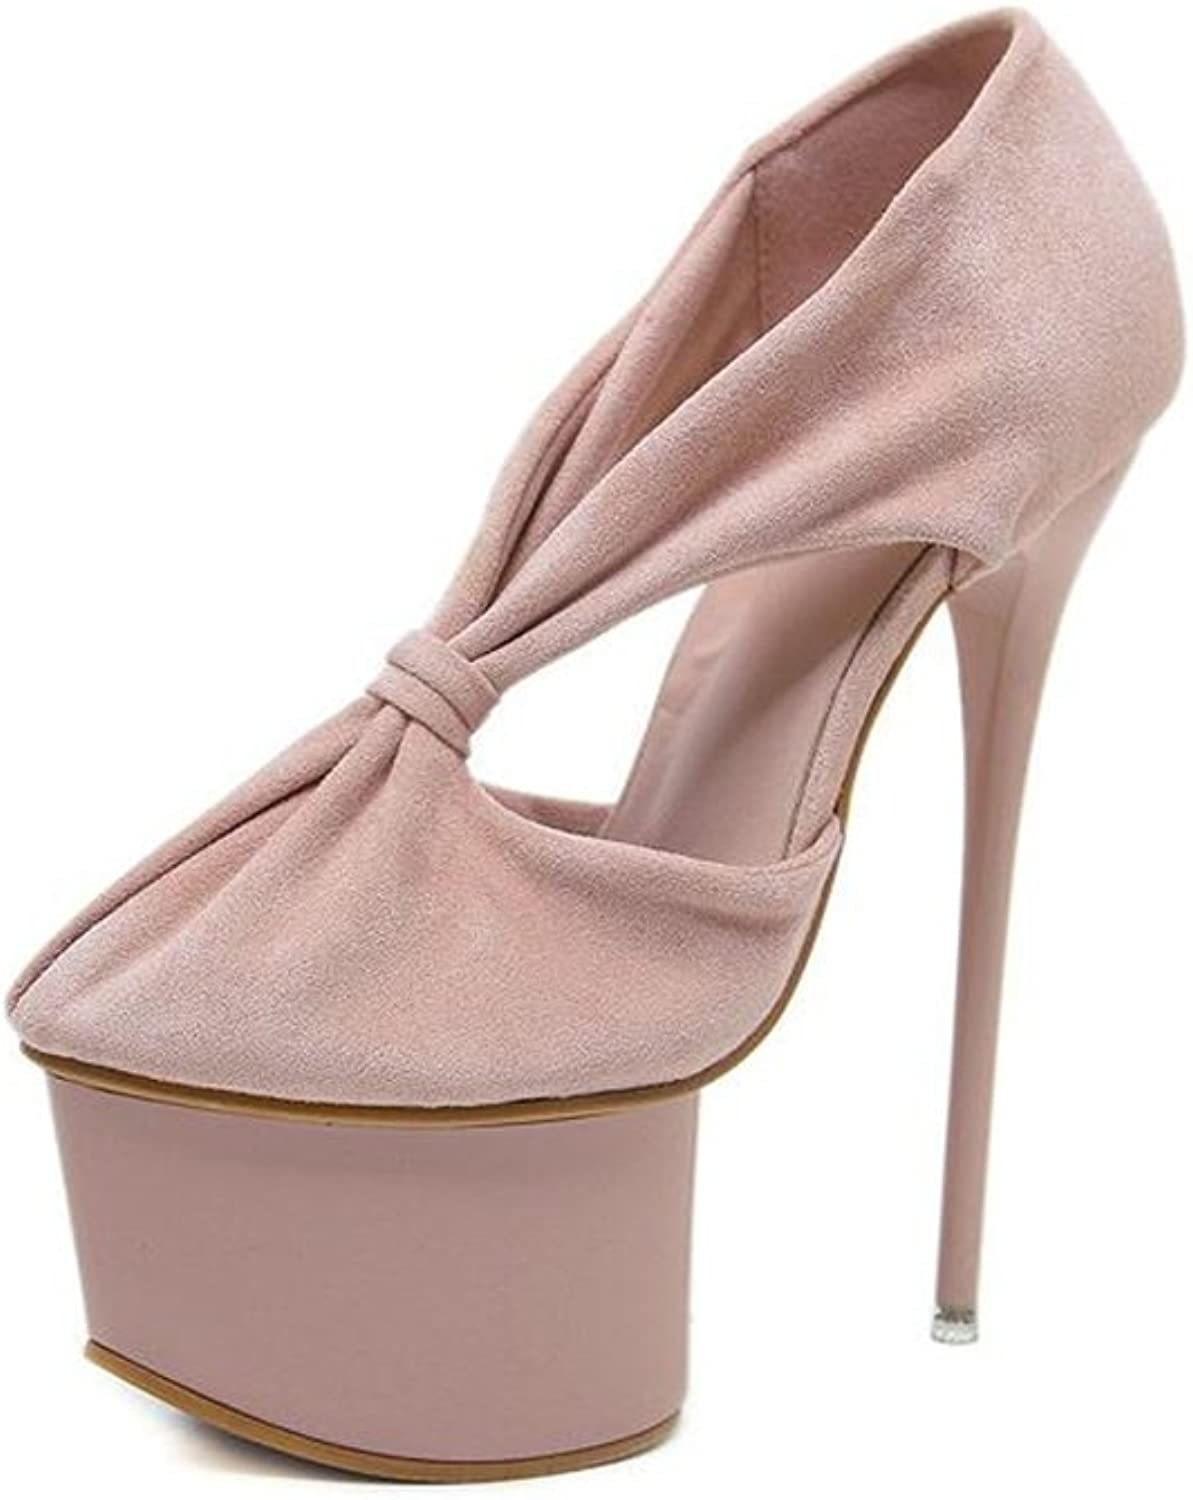 Cloudless Women High Heel Strappy Dress Pumps peep Toe Satin Party shoes